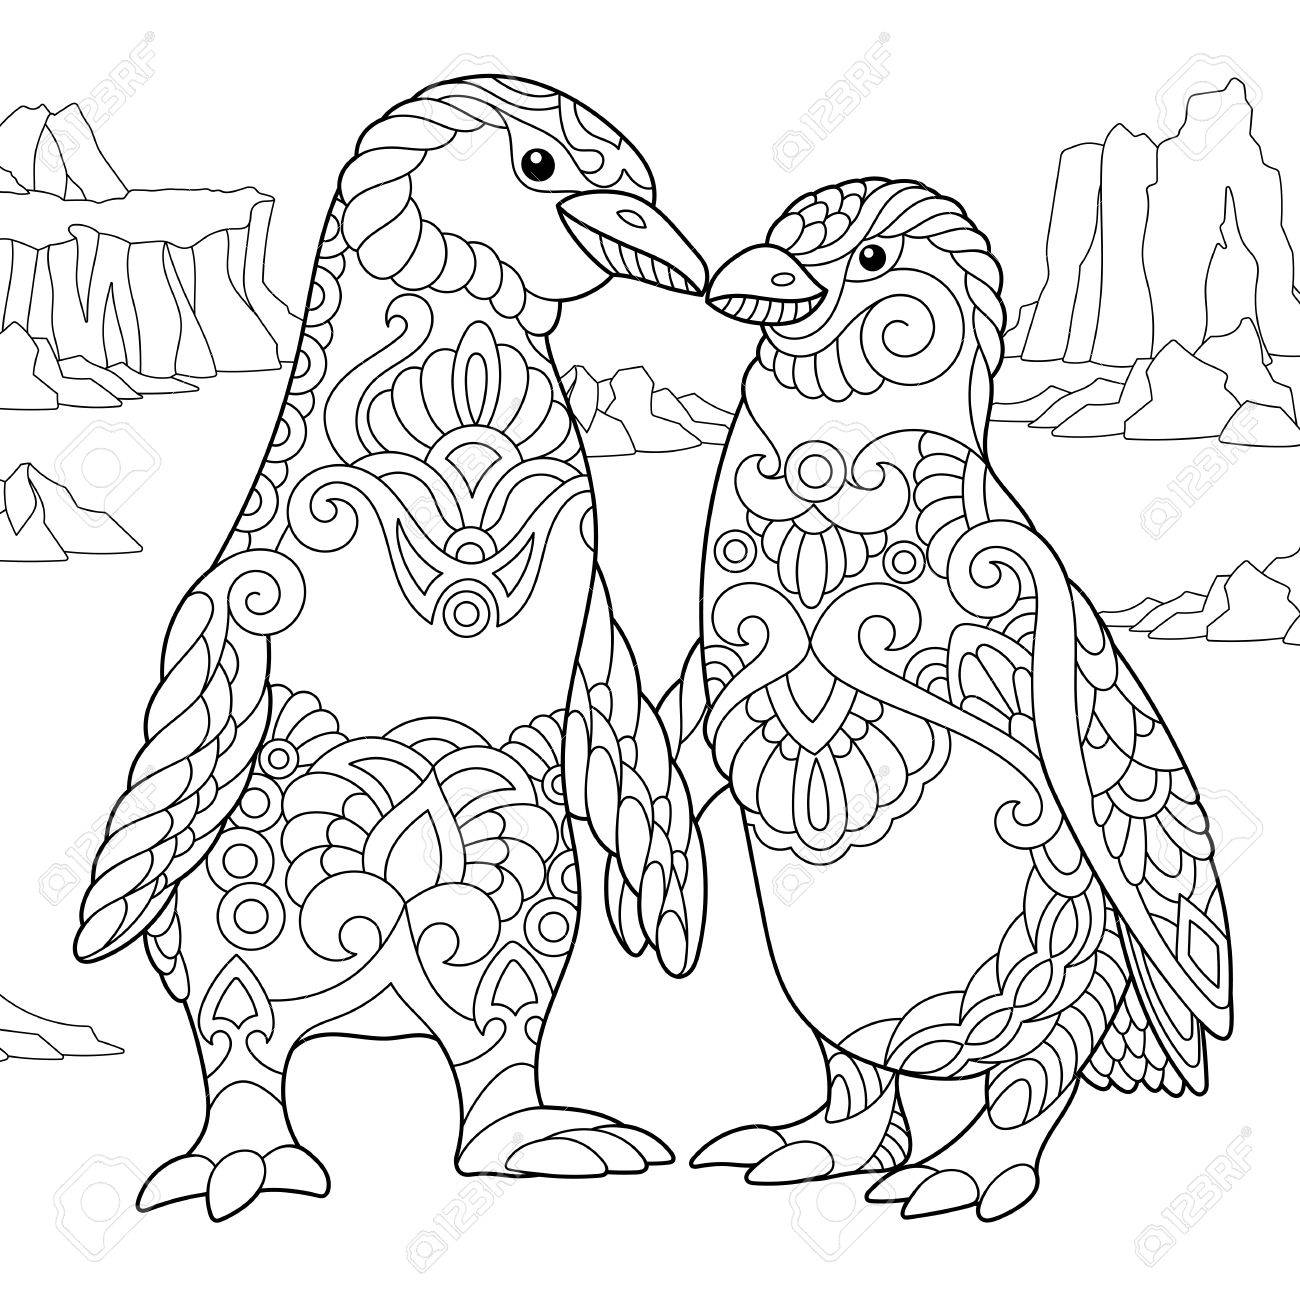 1300x1300 Coloring Page Of Emperor Penguins Couple In Love. Freehand Sketch